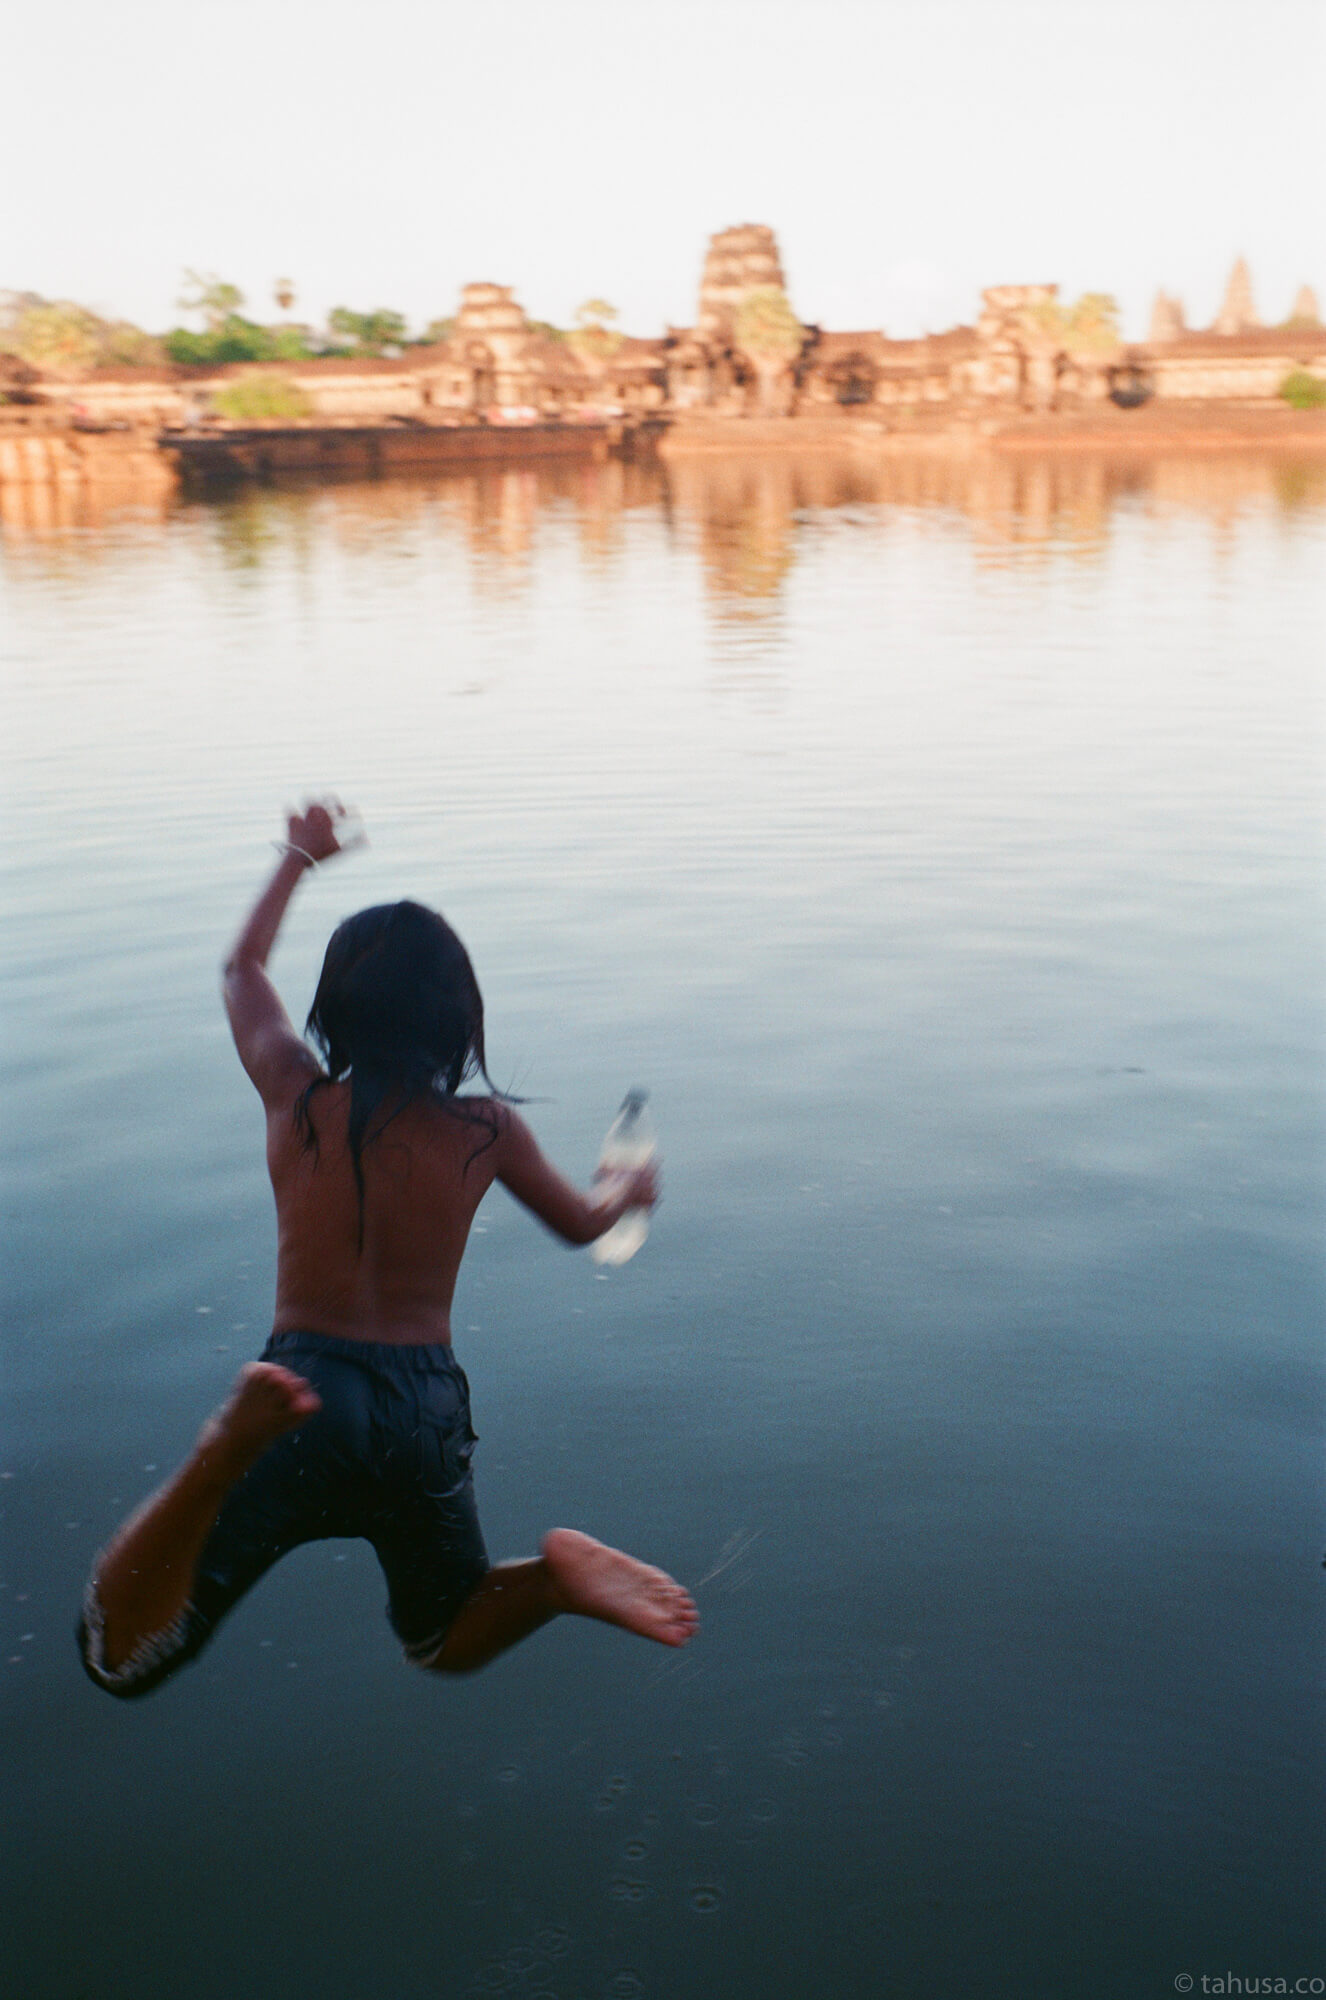 girl-jumping-into-the-lake-cambodia-angkor-siem-reap-south-east-asia-travel-travelling-street-snap-using-leica-m2-summilux-35mm-f1.4-infinity-lock-pre-asph-analog-film-is-fuji-fujifilm-superia-premium-400-iso400